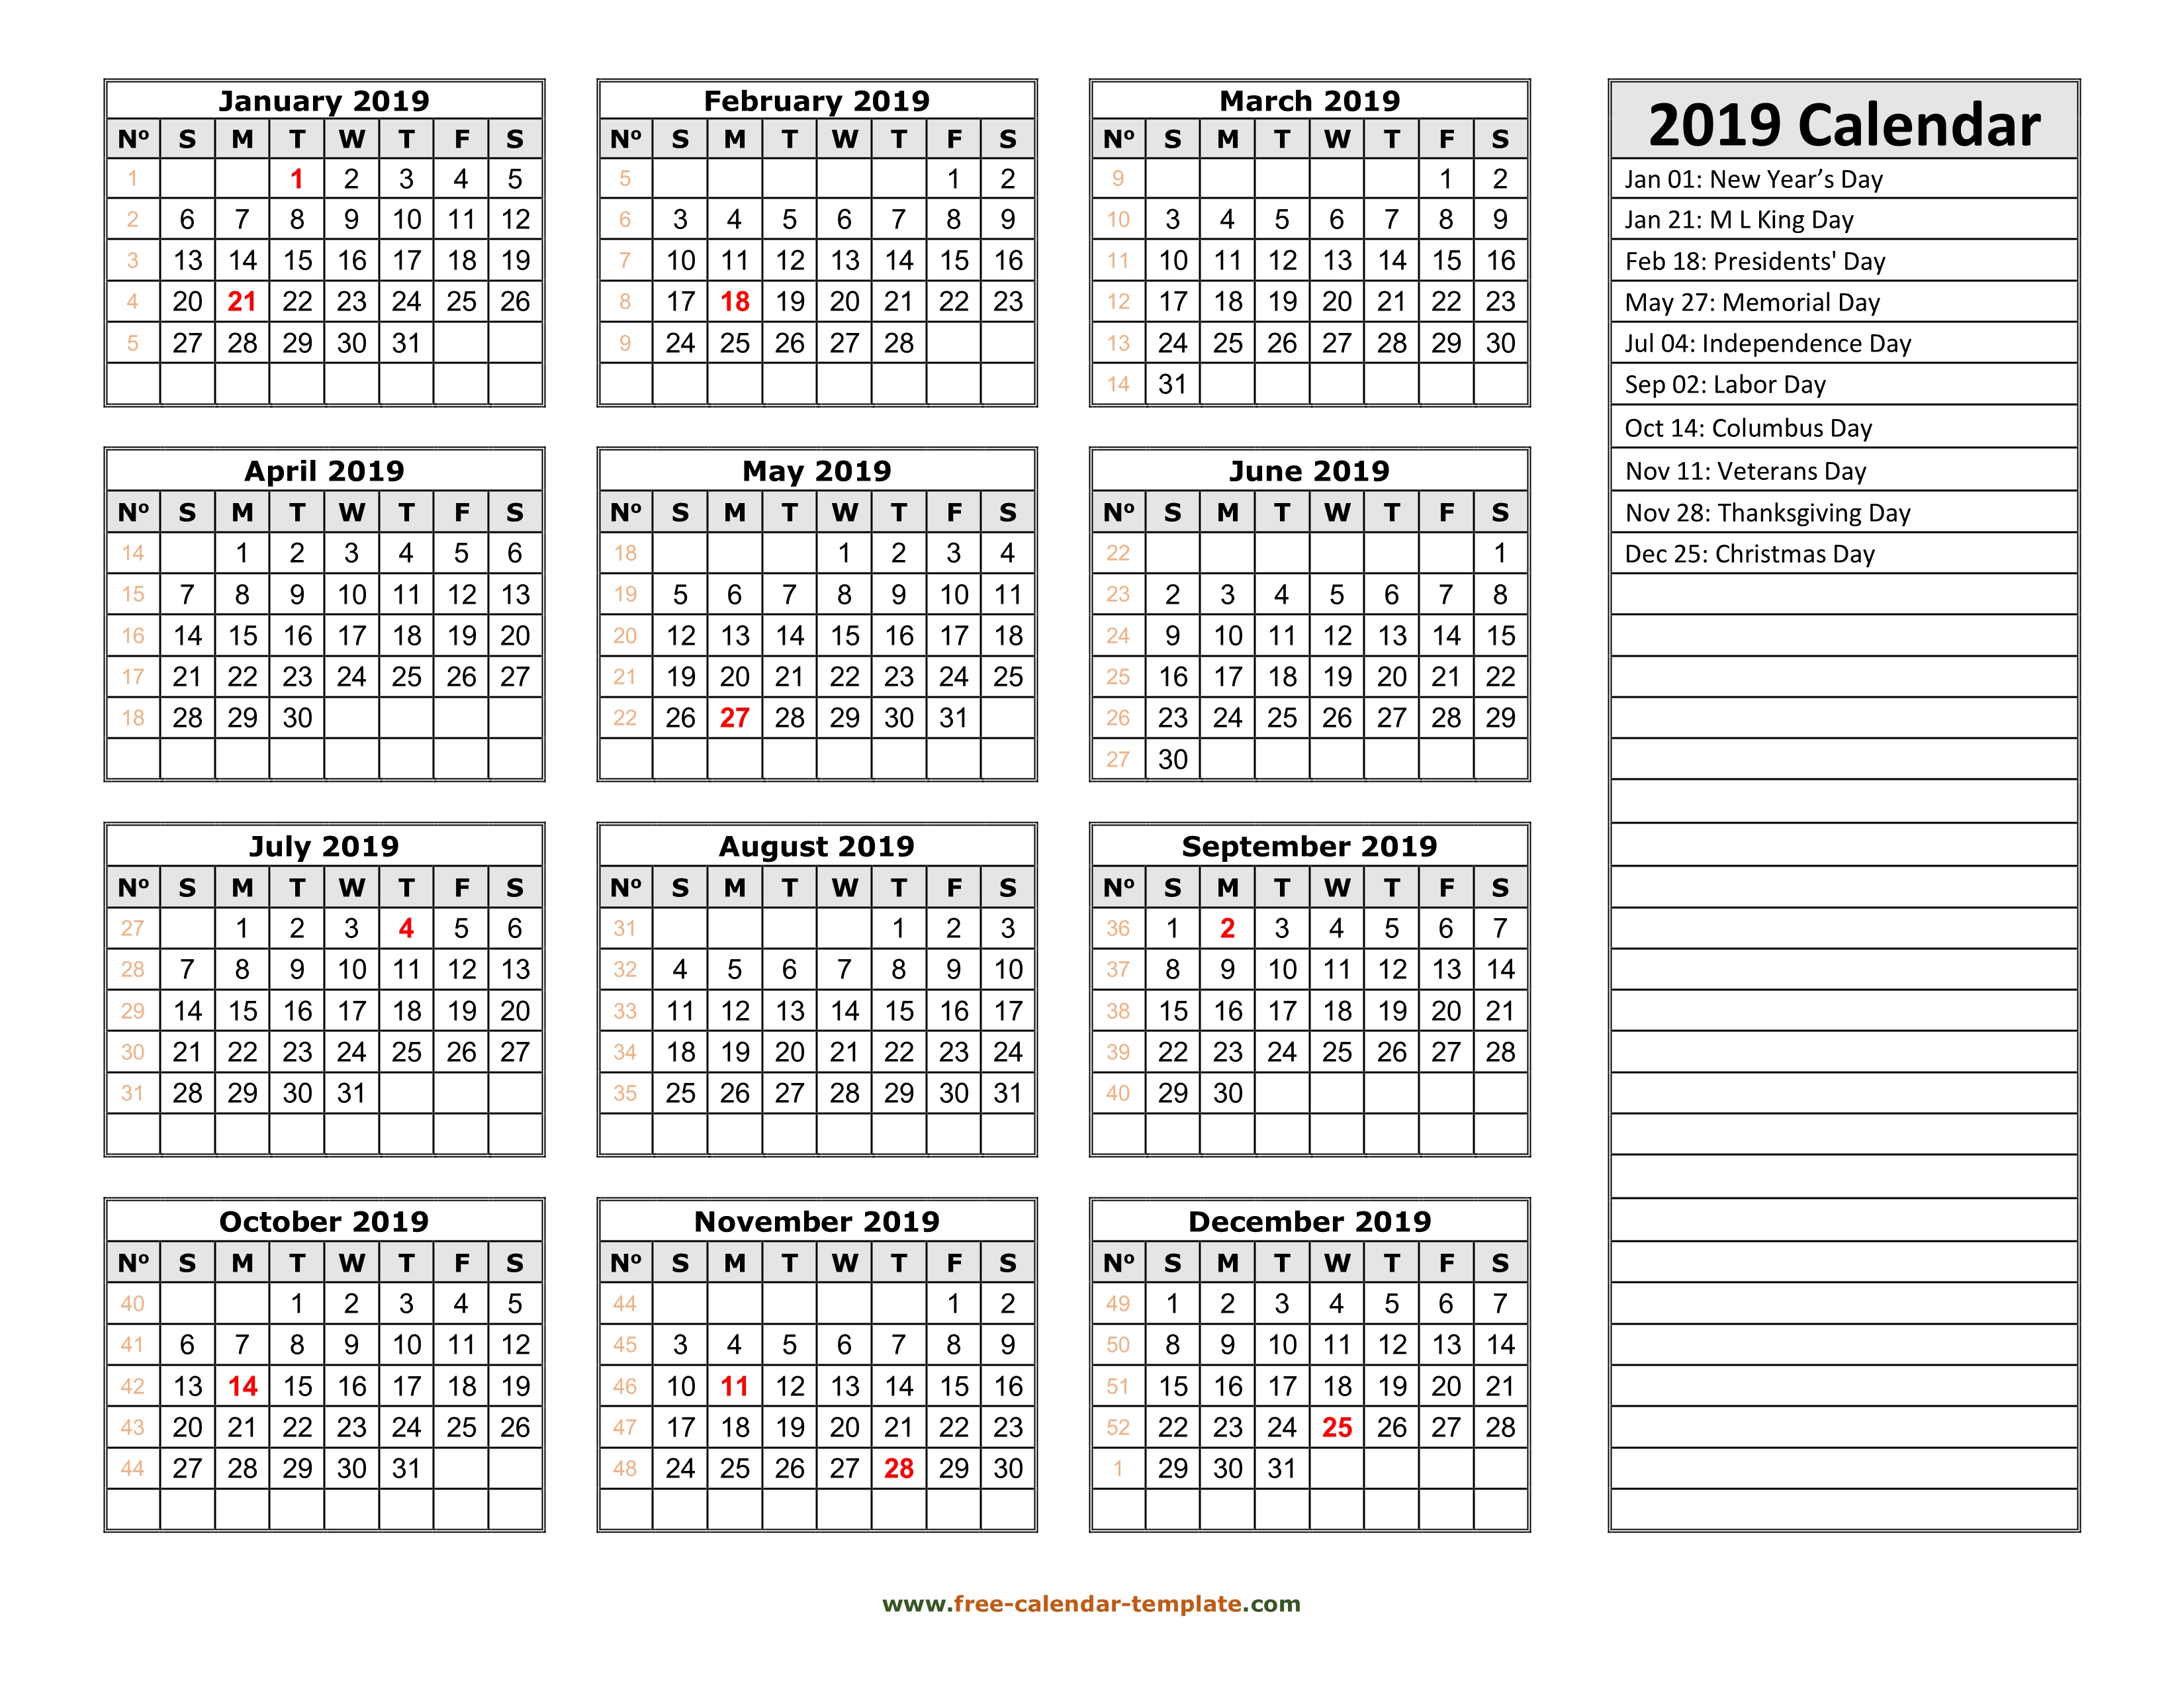 2019 yearly calendar printable with week numbers | Free-calendar ...